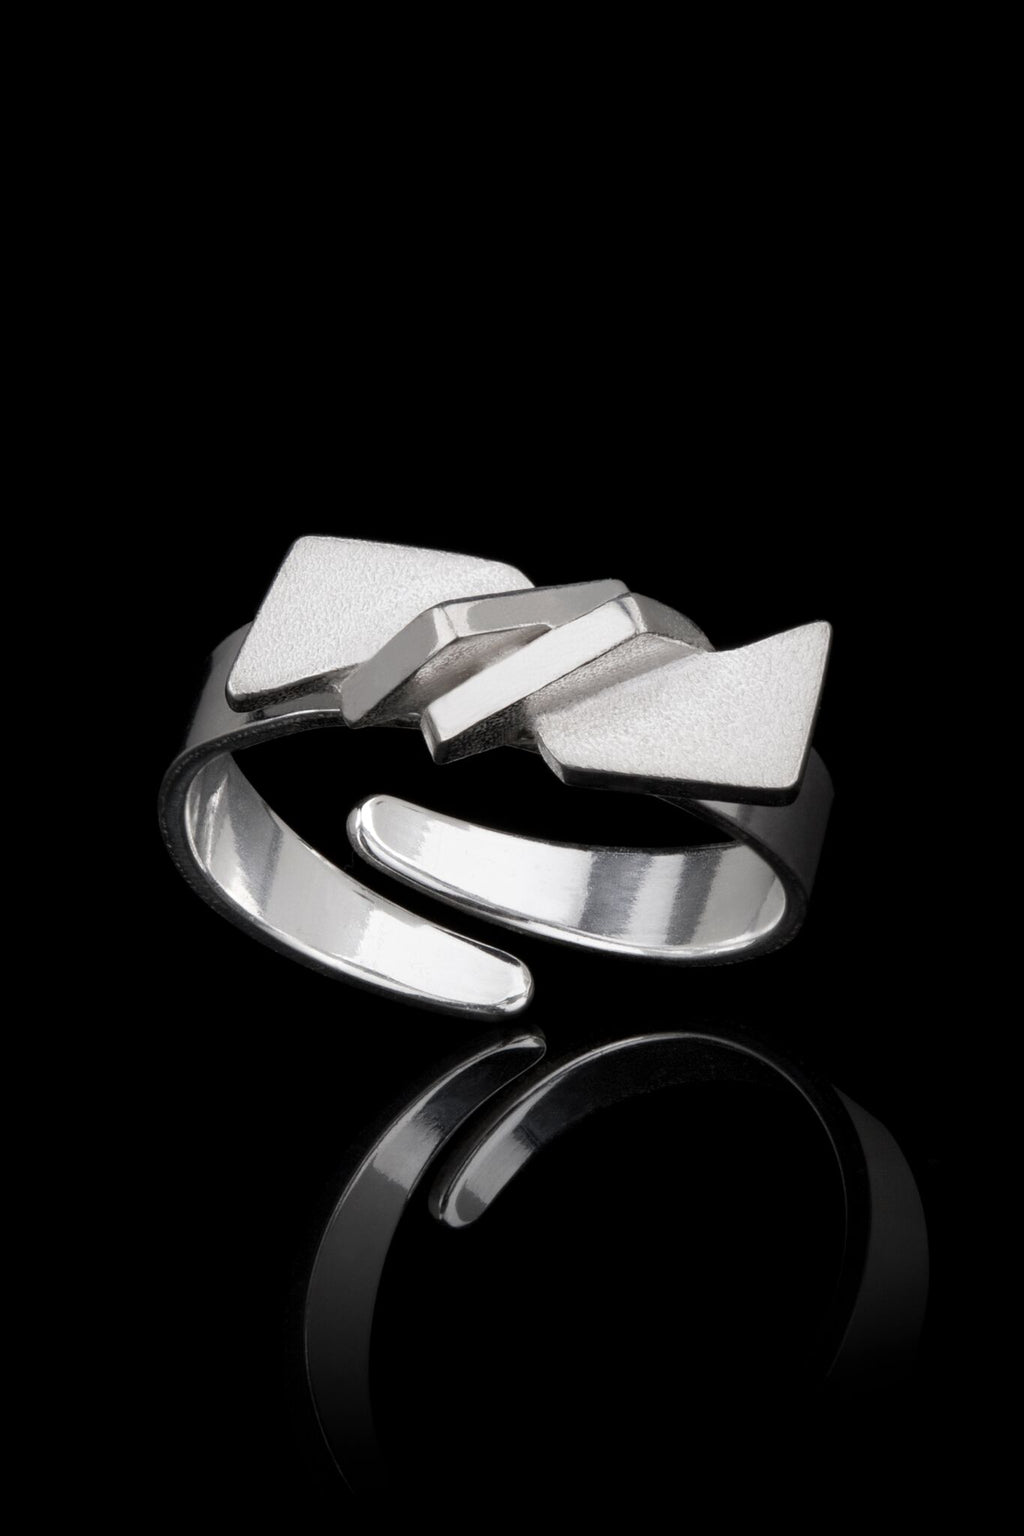 IGJ Design - Mountain Ring Rings - Norwegian Jewelry features artisan jewellery designers and goldsmiths from Norway.